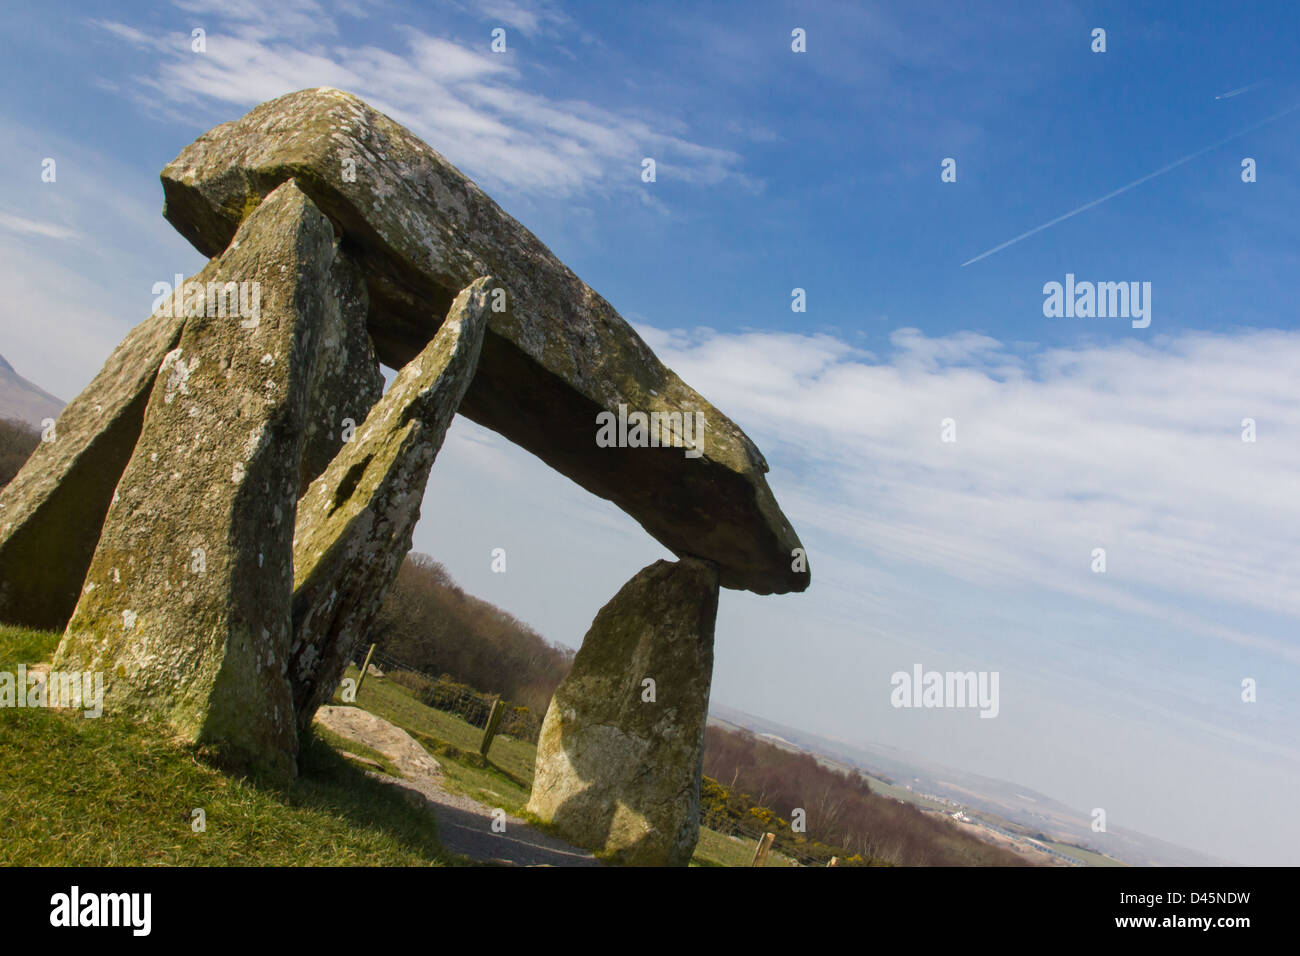 Pentre Ifan dolmen with airoplane trails in the sky. - Stock Image